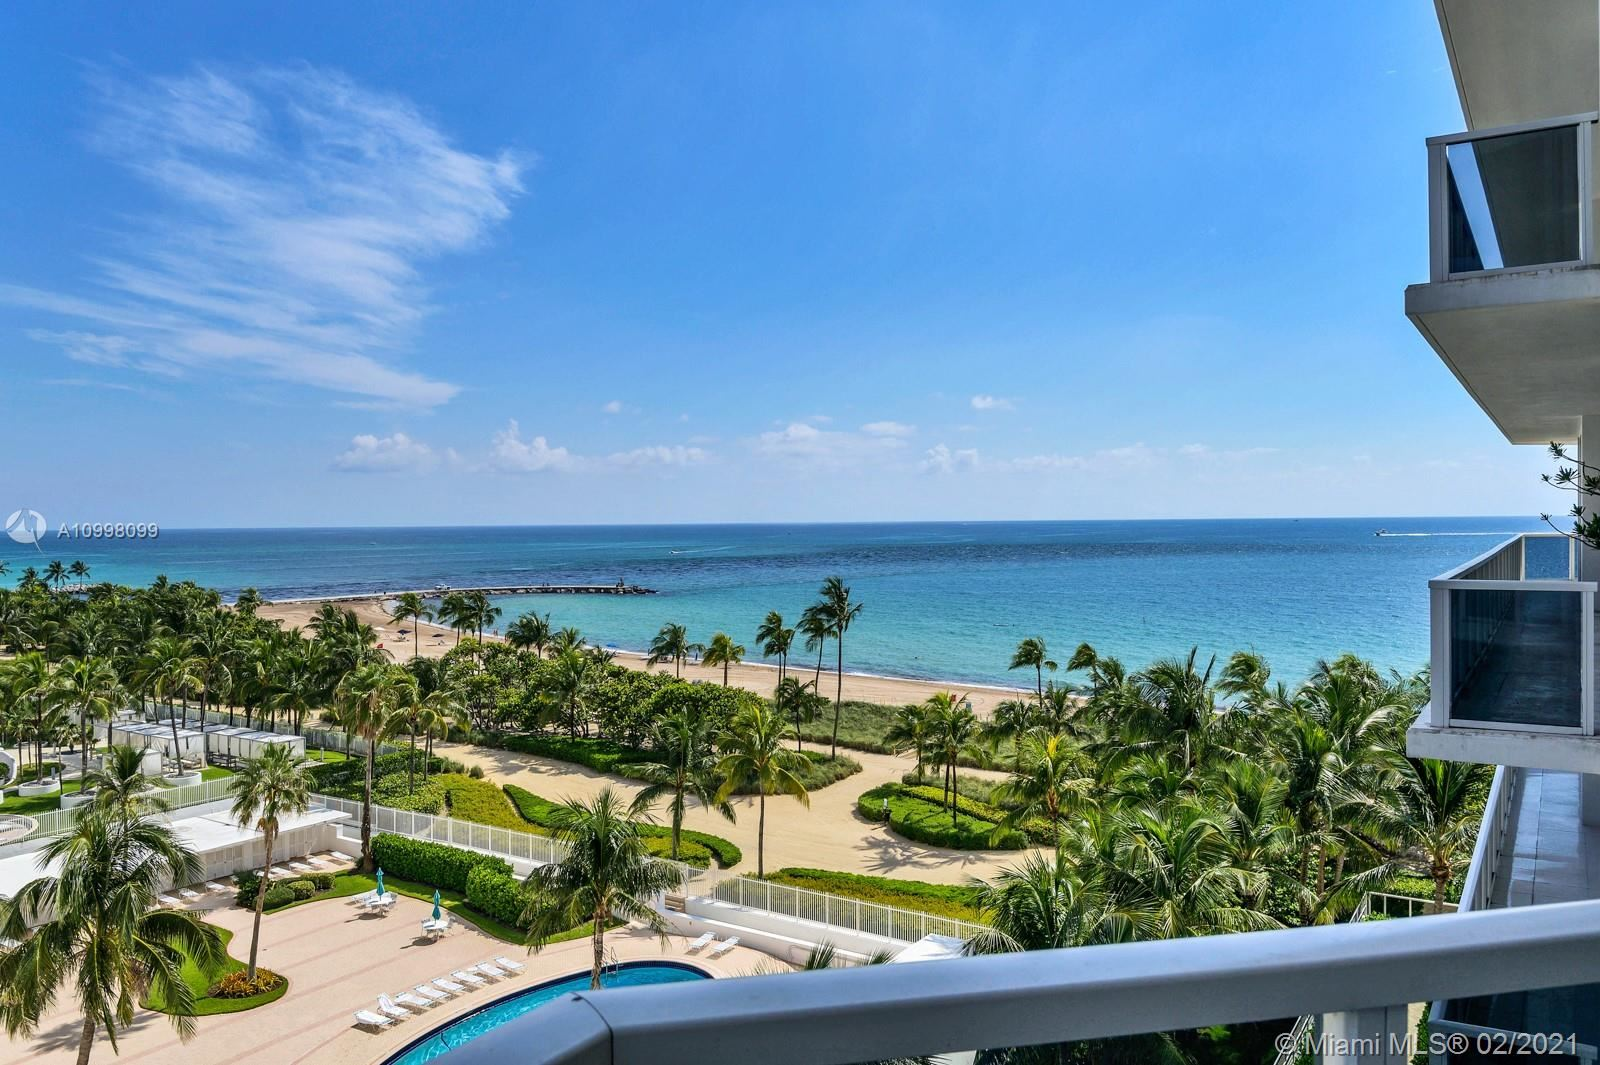 10225 Collins Ave #503, Bal Harbour, FL 33154 - #: A10998099